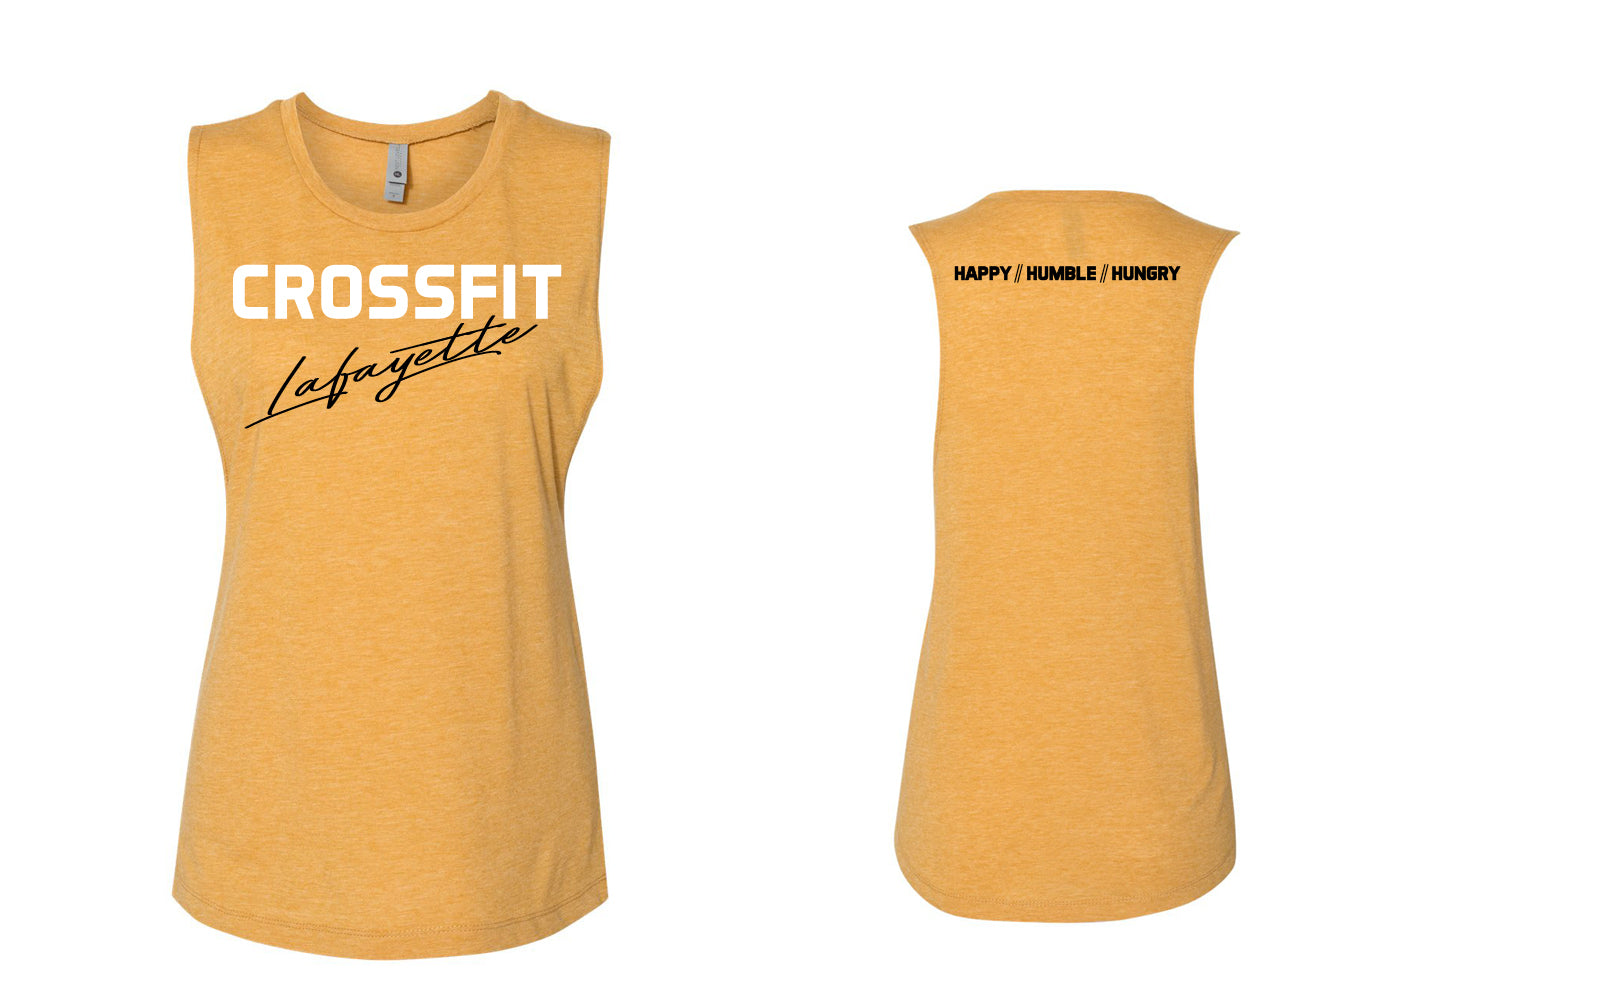 Crossfit Lafayette - Happy Humble Hungry Tank